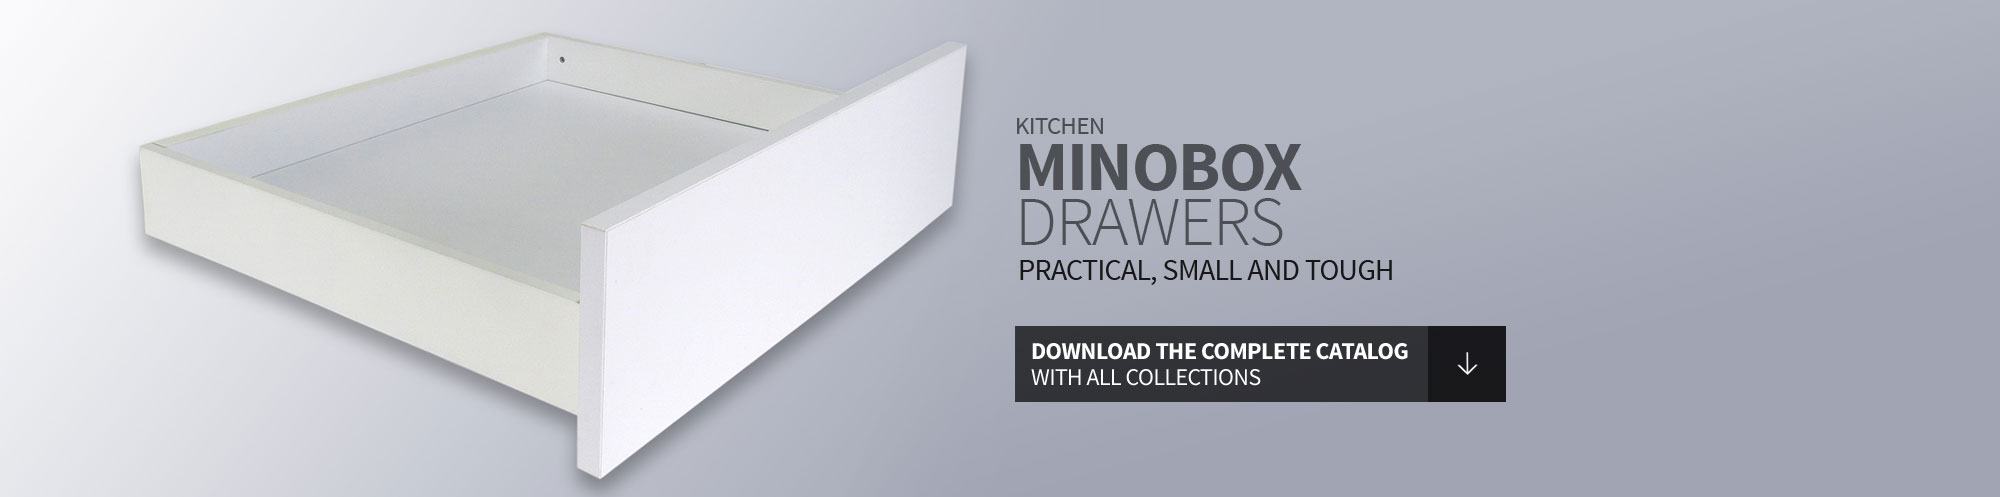 minibox drawers